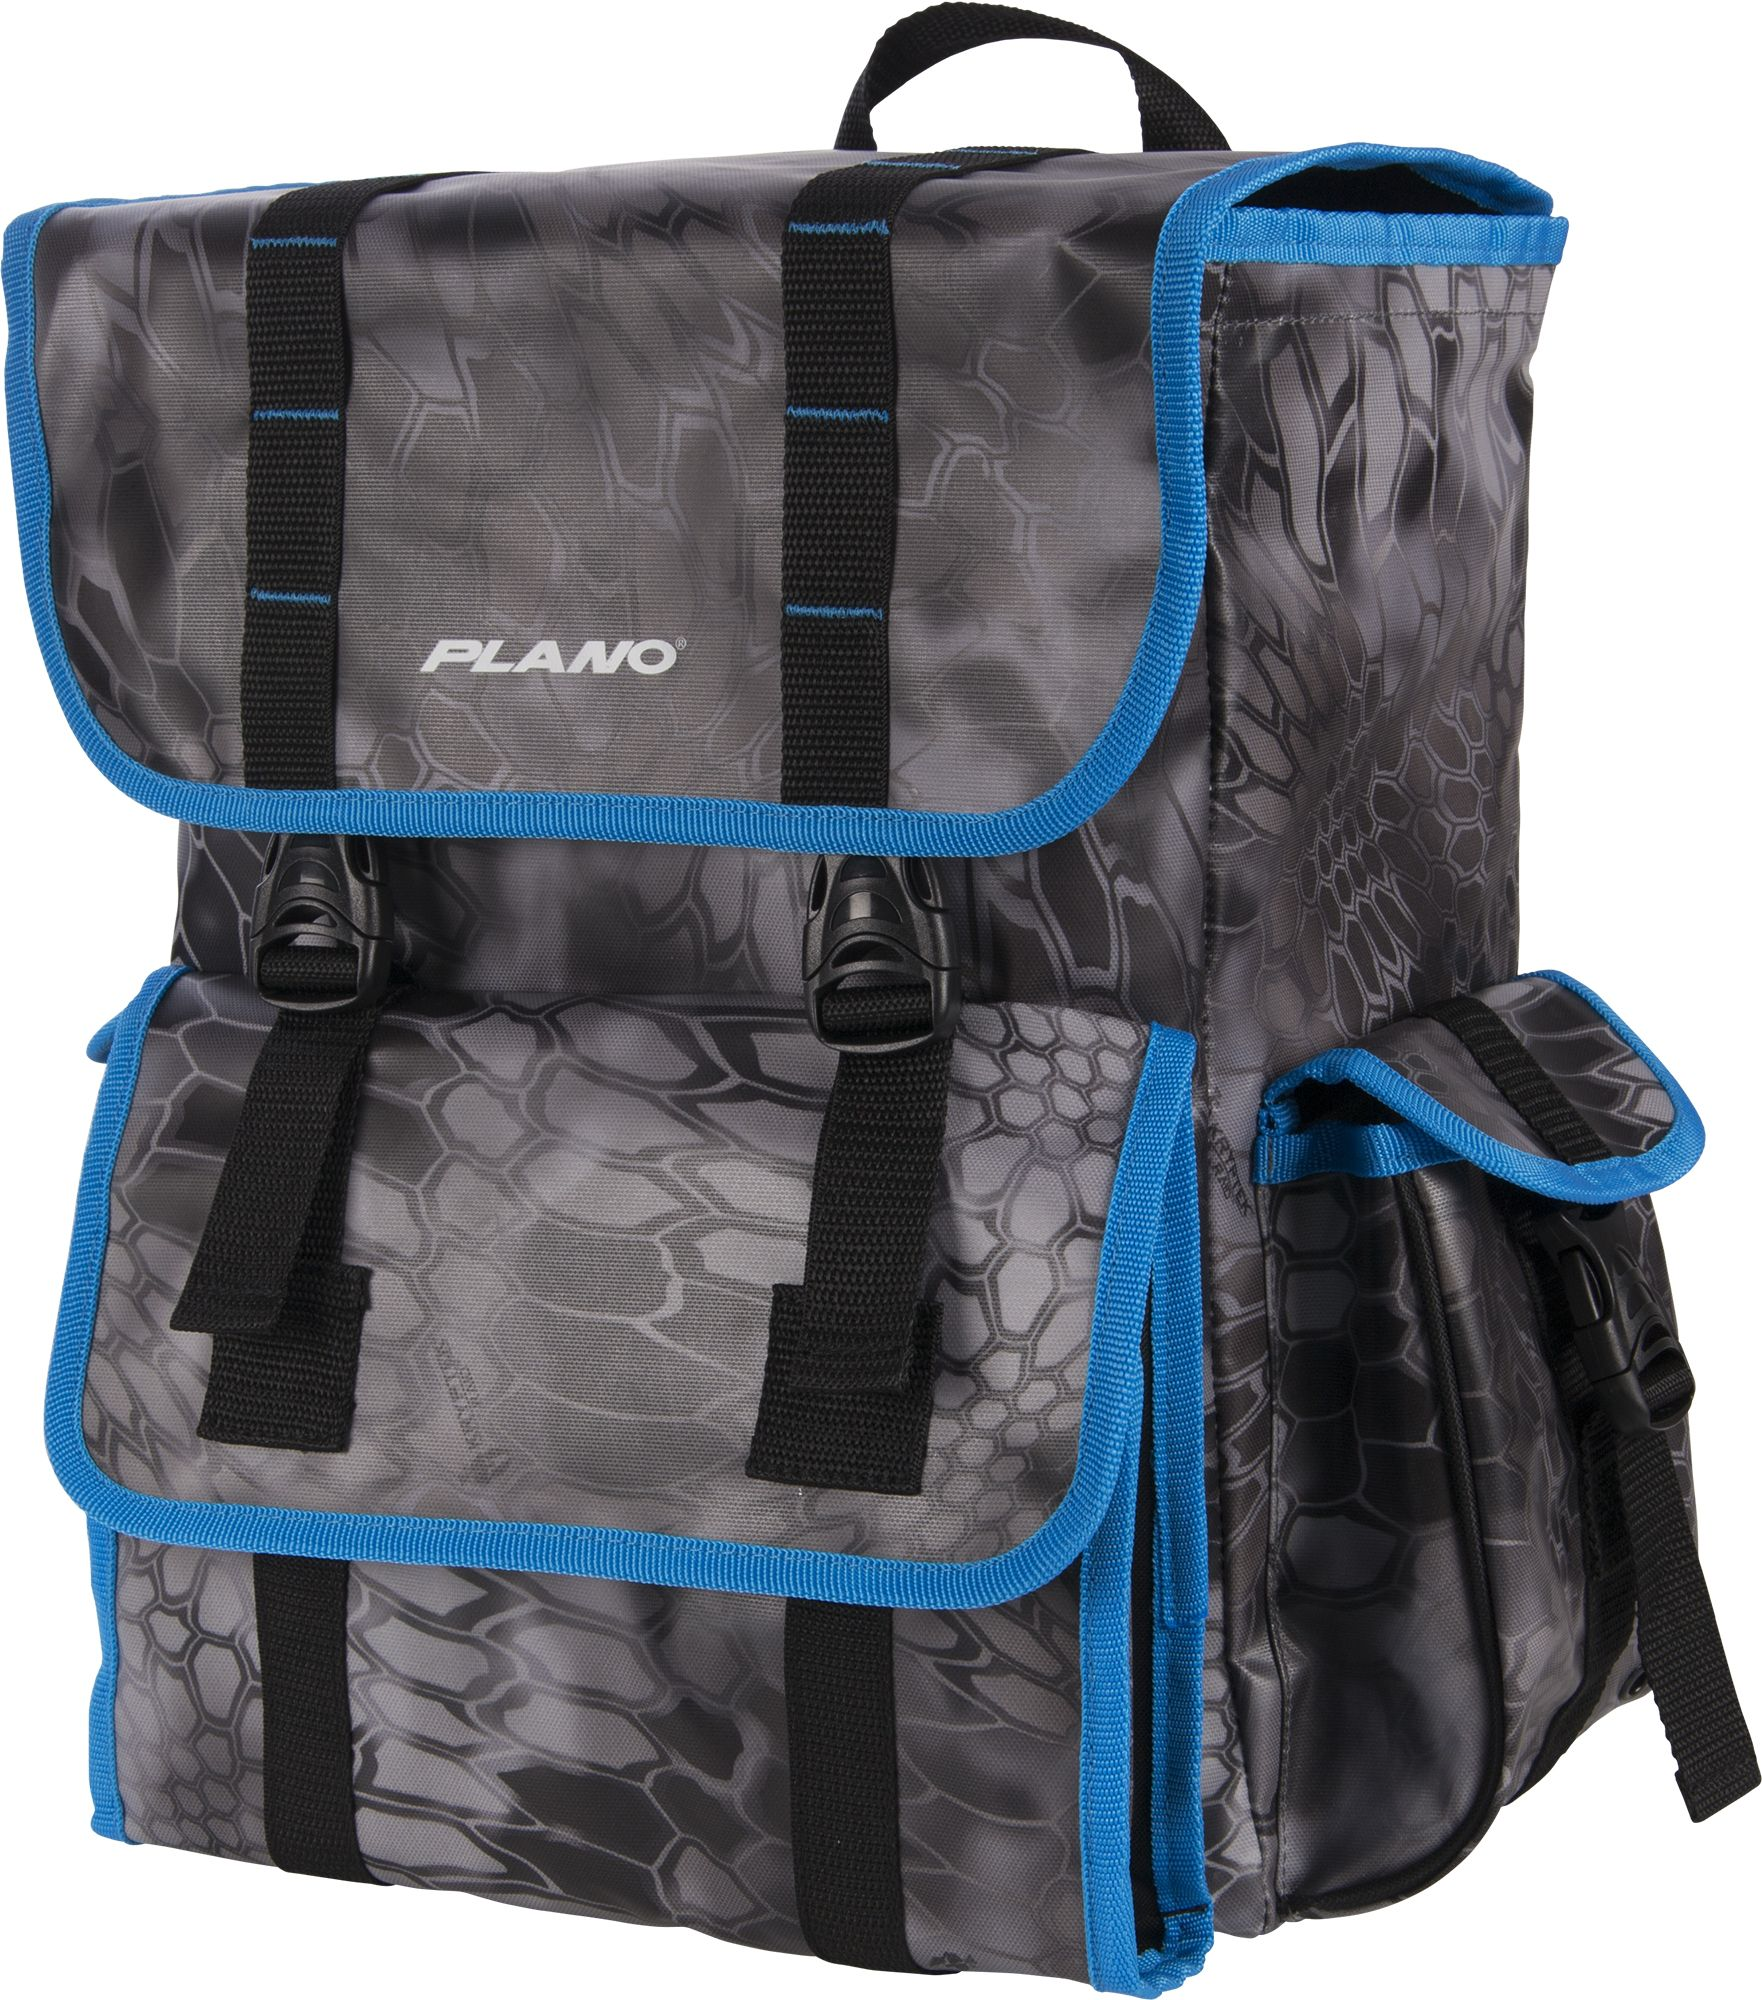 Plano Z-Series Tackle Backpack, Size: Large